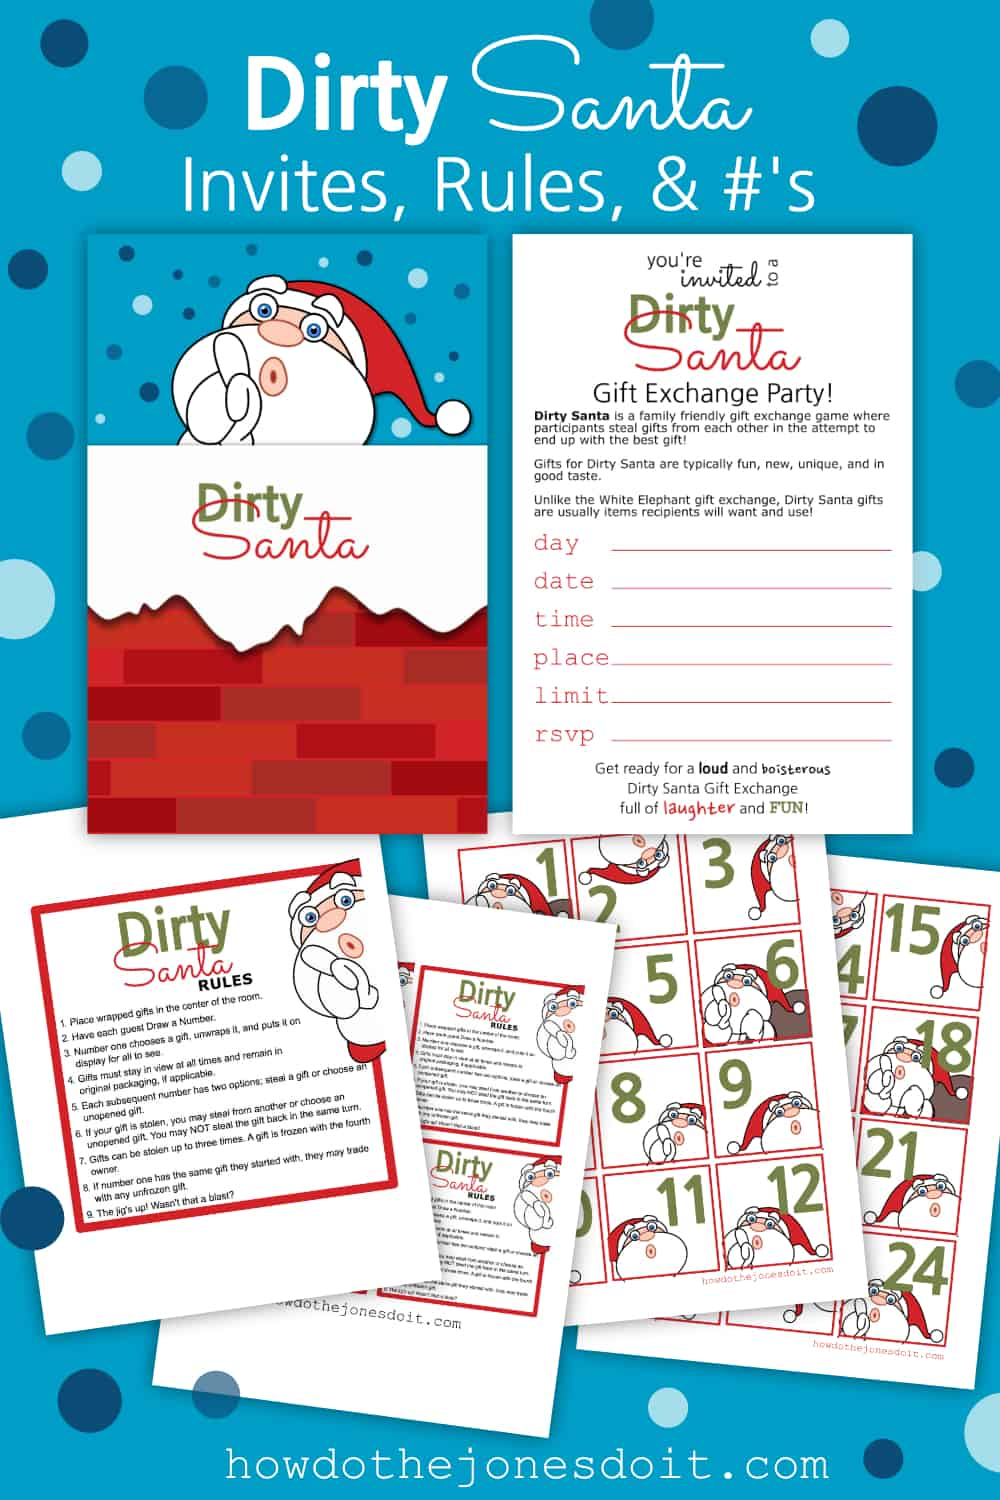 Dirty Santa Invites